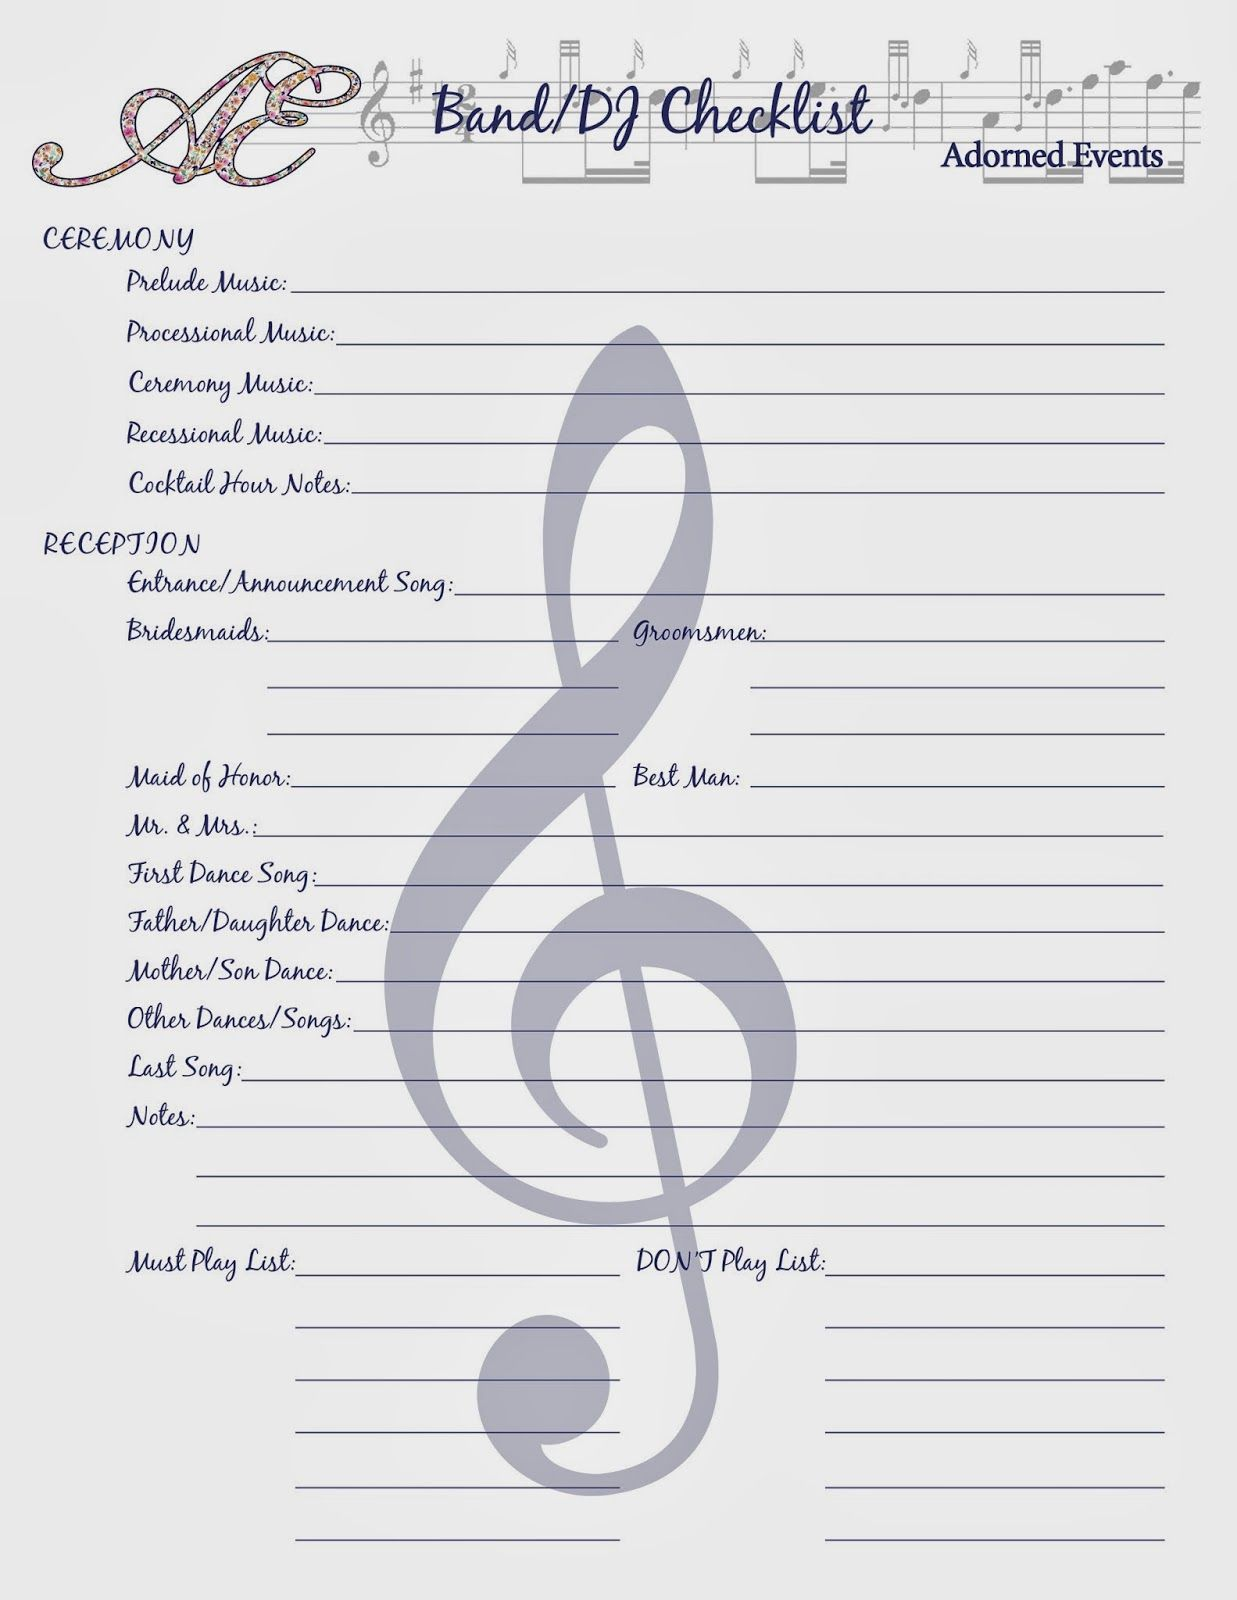 Keep Your Wedding Plans In Order With This Handy DjBand Checklist